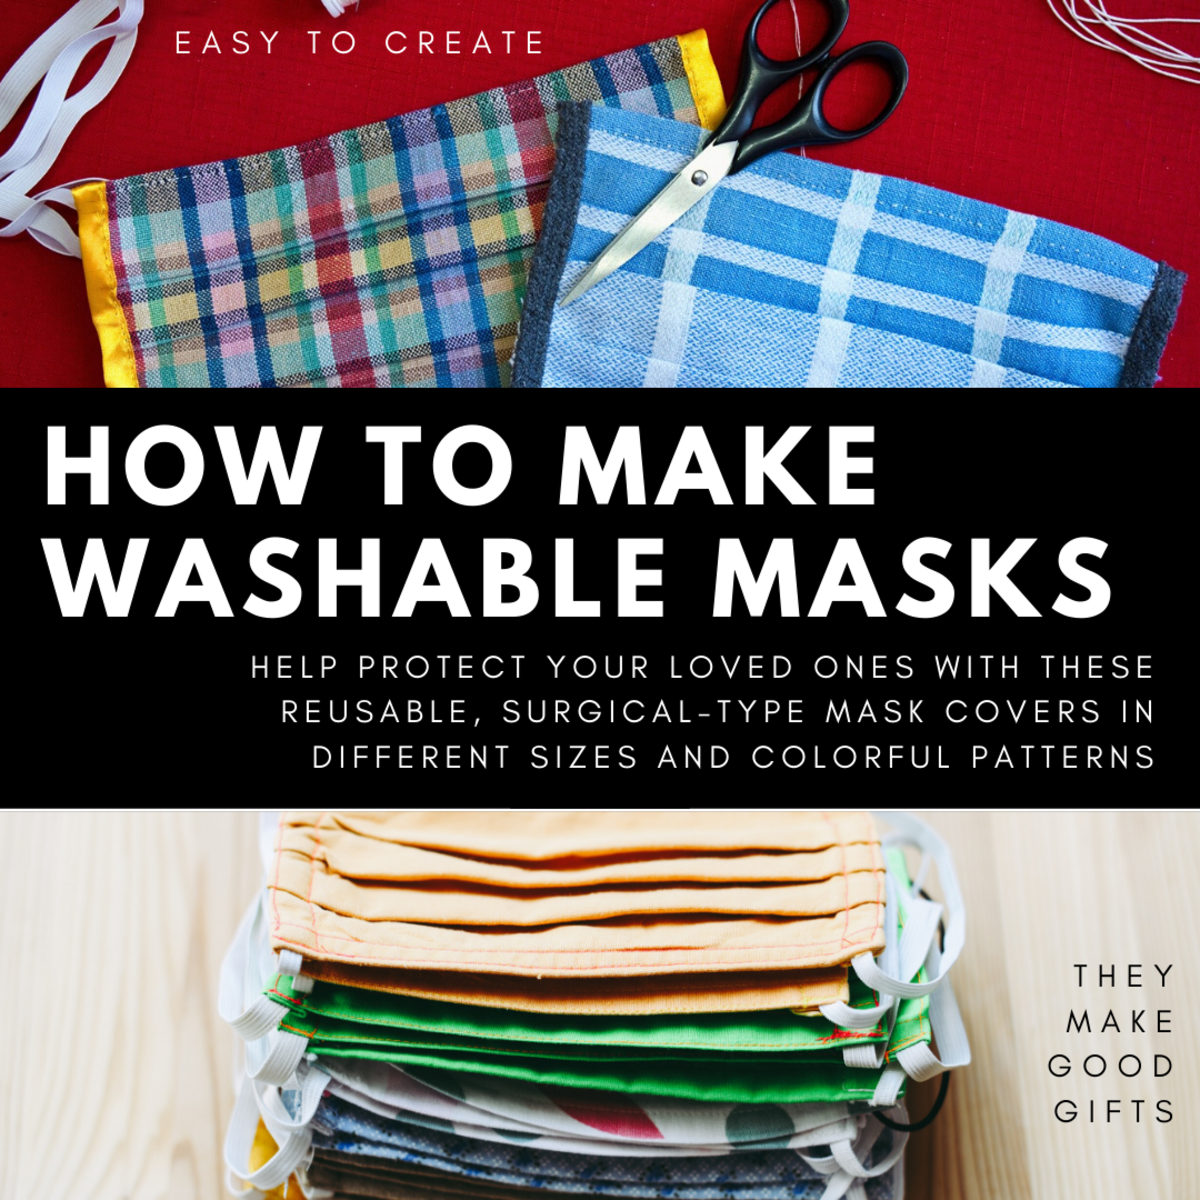 This article will show you how to sew your own washable, surgical-type masks to help protect your loved ones and slow the spread of COVID-19.